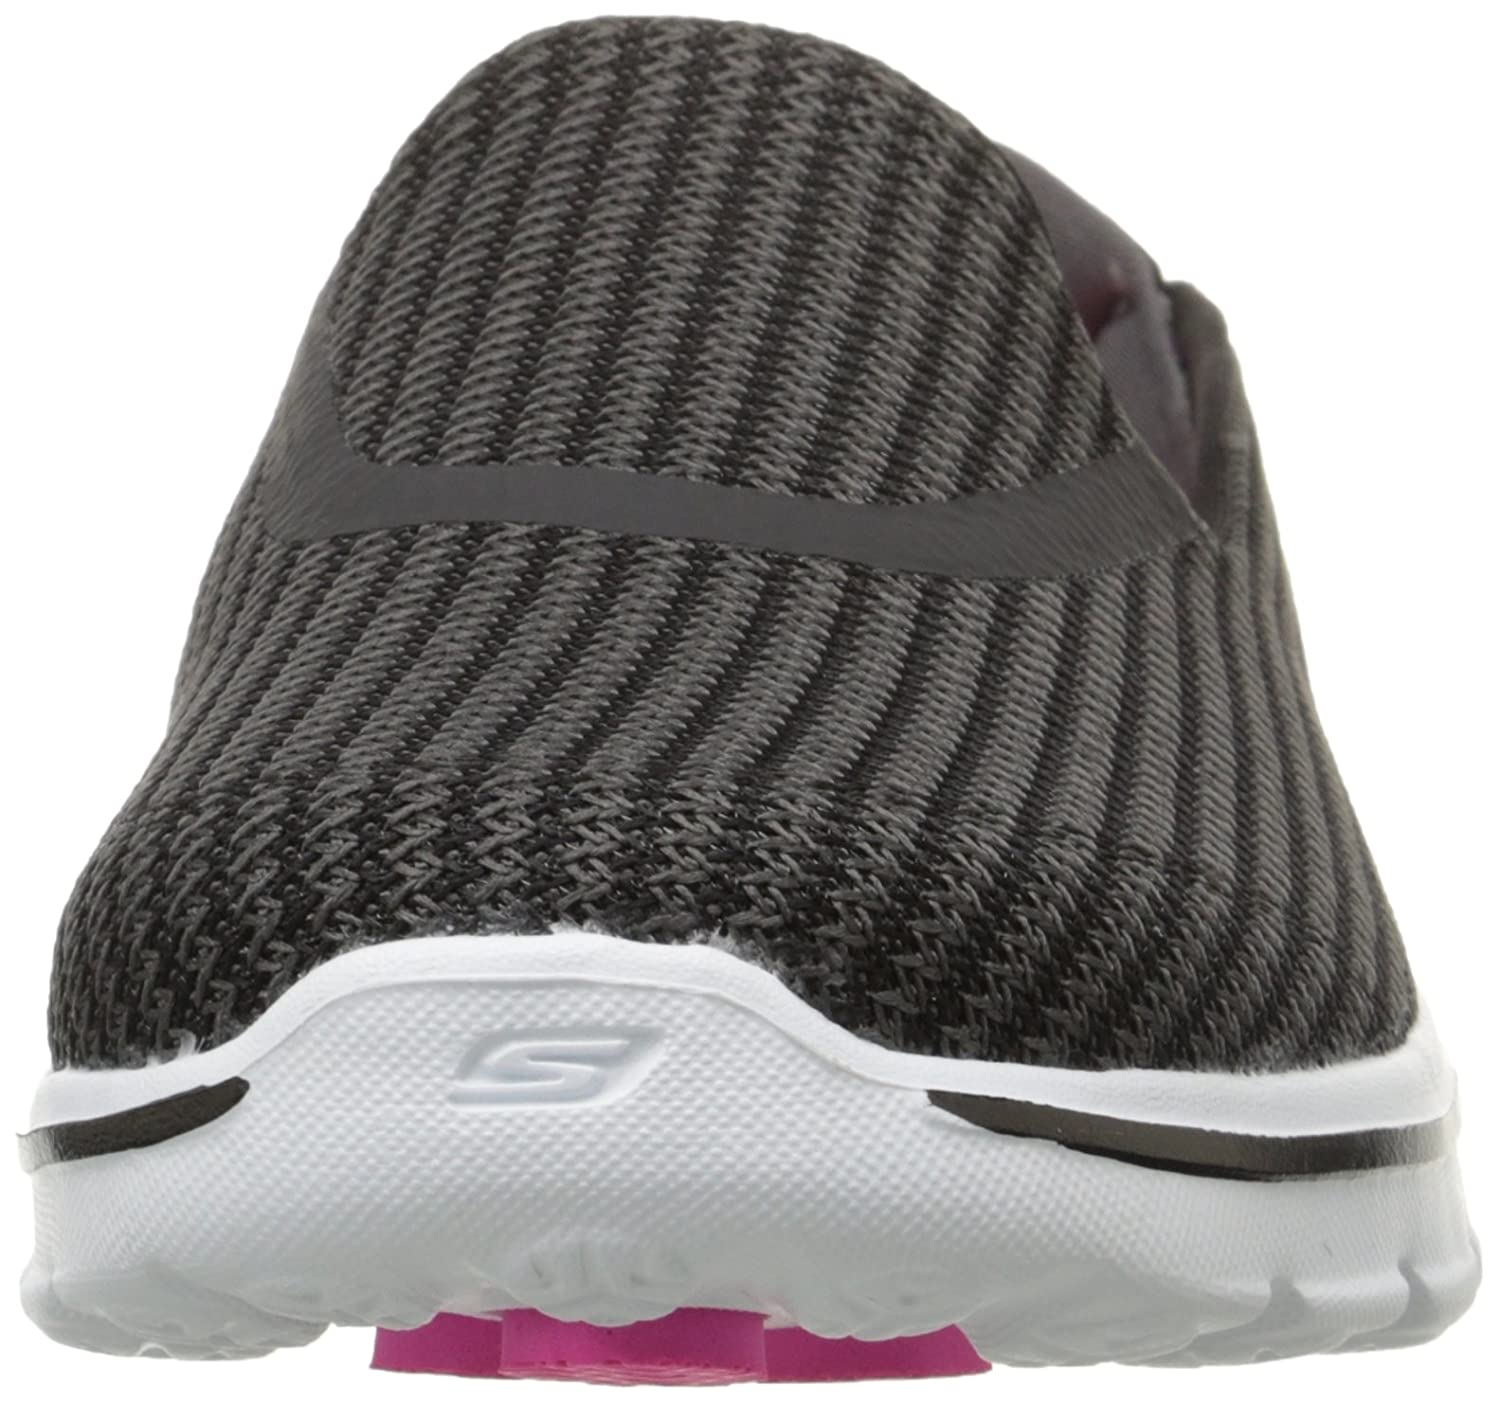 Skechers Performance Women's Go Walk 3 Slip-On Walking Shoe B00LL2OIV8 9.5 XW US|Black/White